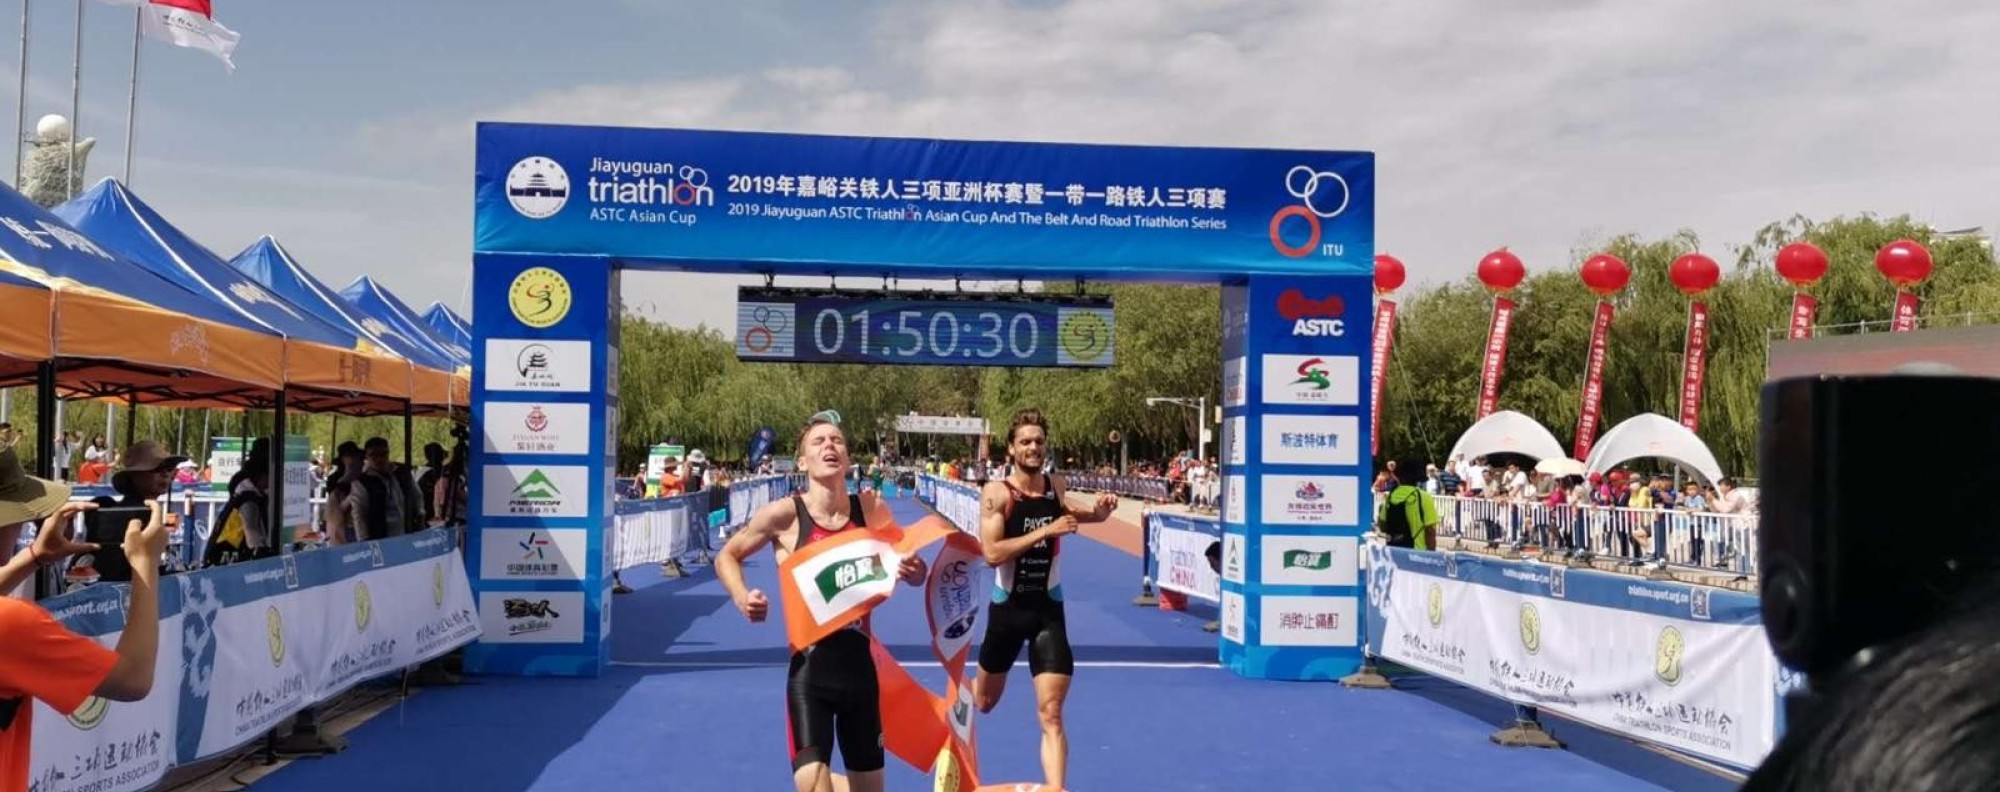 Oscar Coggins downs Gregor Payet from Luxembourg in a sprint finish at the 2019 Jiayuguan ASTC Triathlong Asia Cup. Photo: Handout